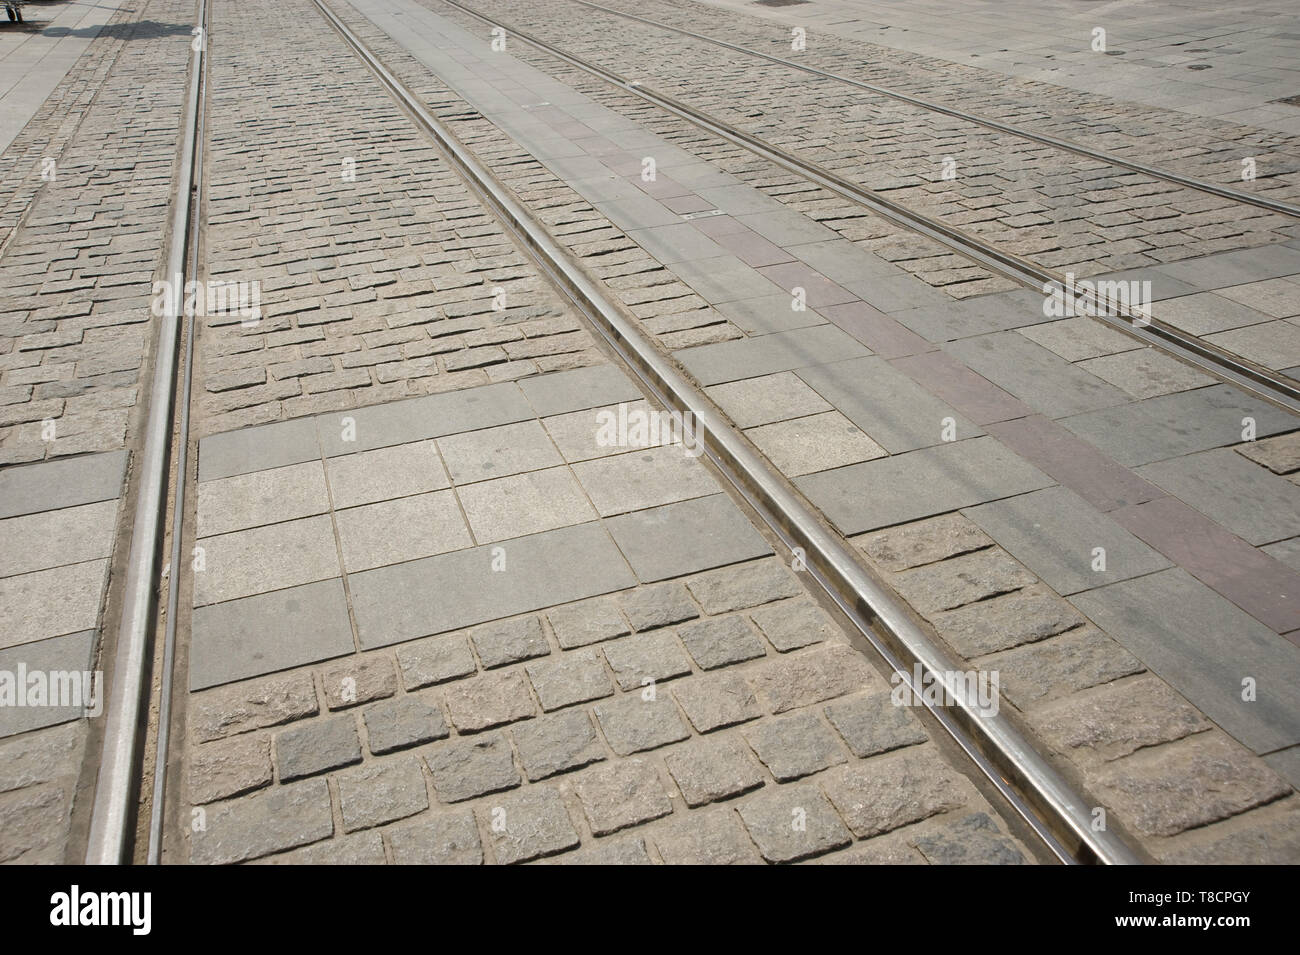 Orleans, Tramway Stock Photo